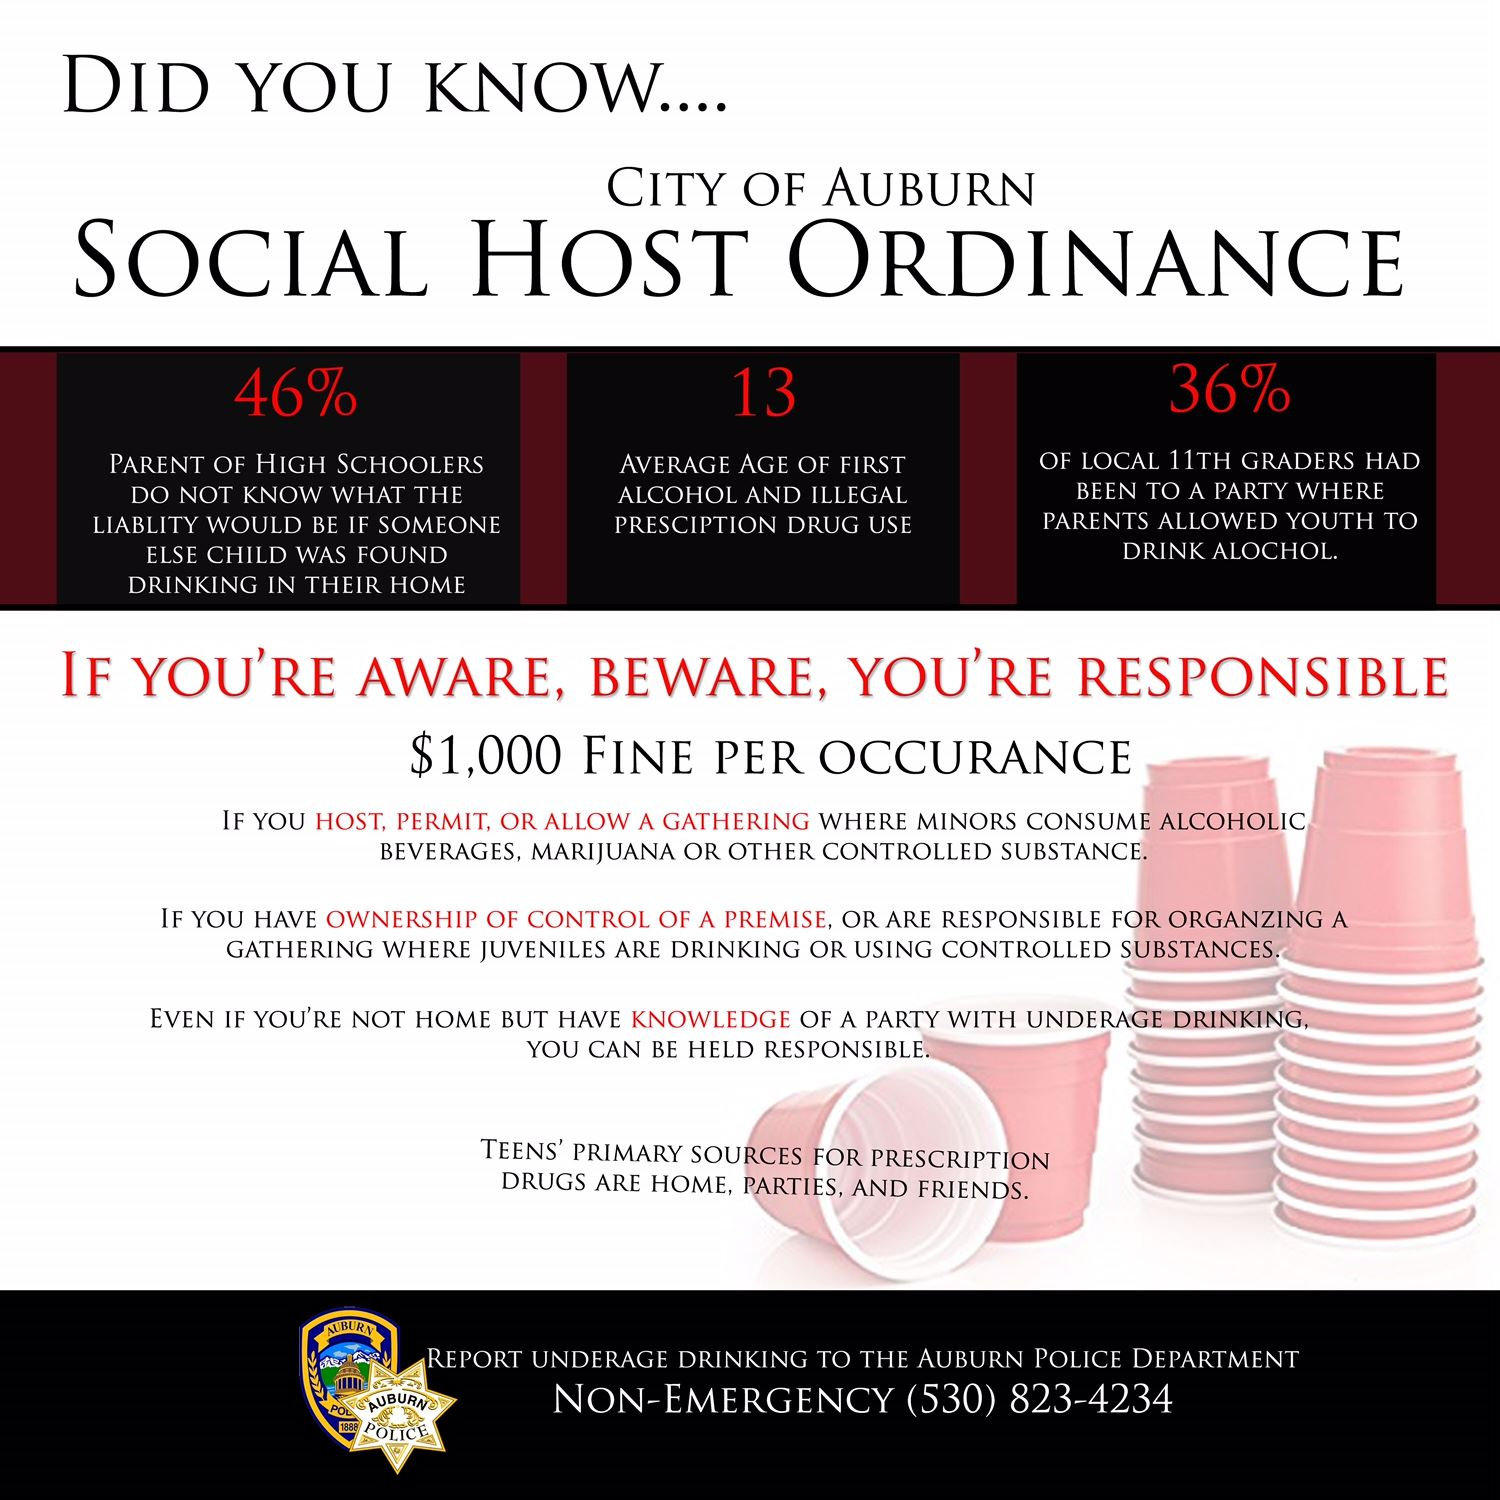 Social Host Ordinance